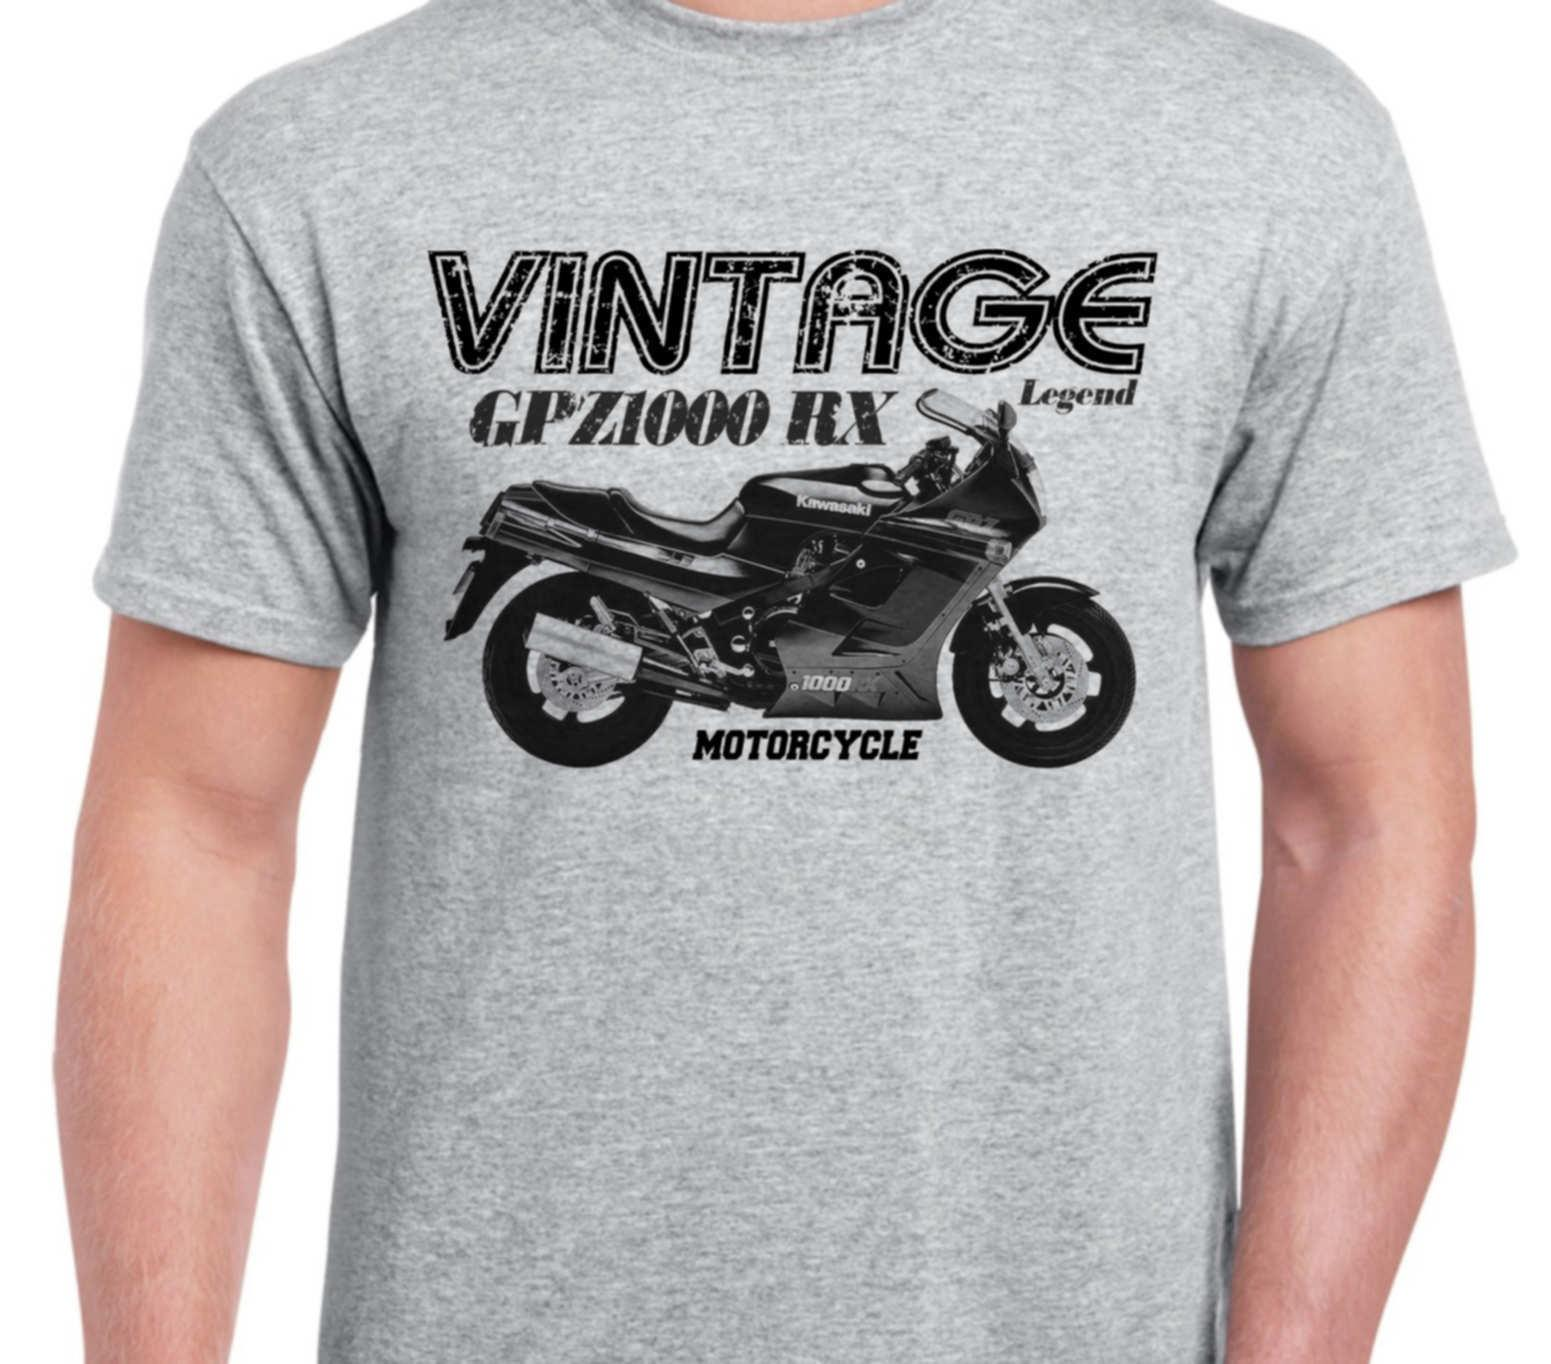 Tshirt shirt Baby PRINT Motorcycle Kawasaki Custom Baby Name and Number